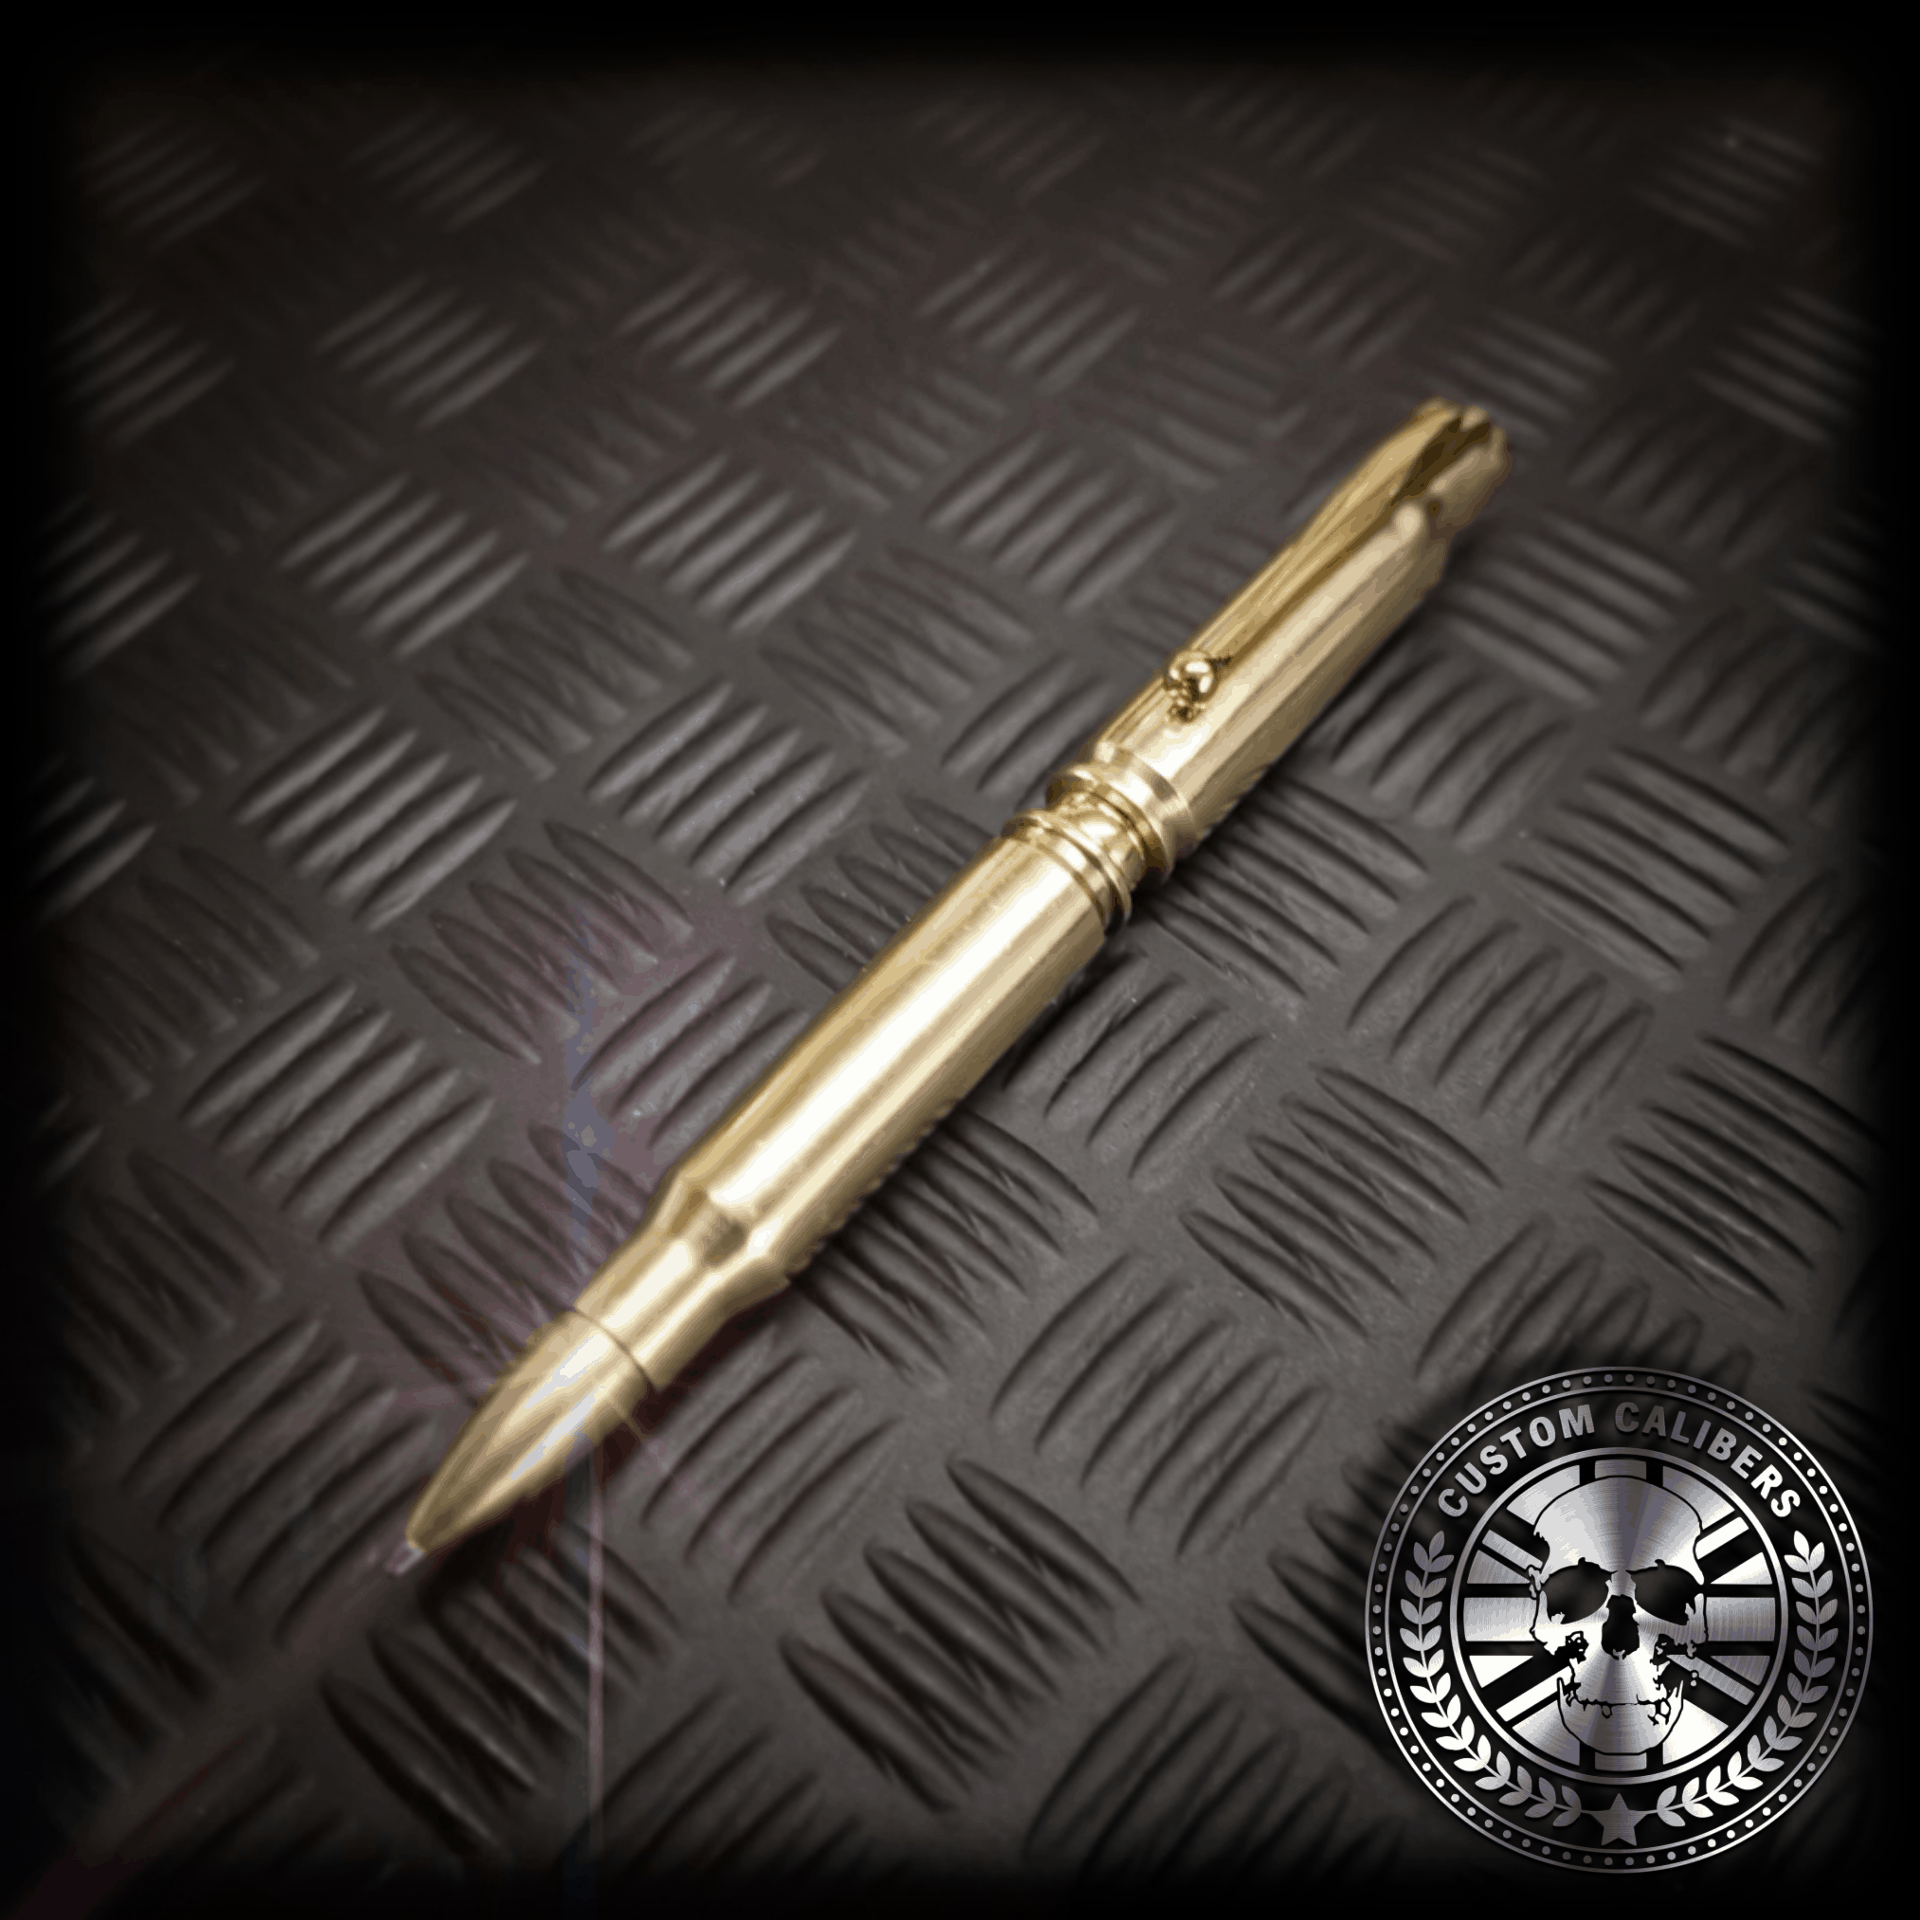 The full metal jacket 308 bullet pen in polished brass